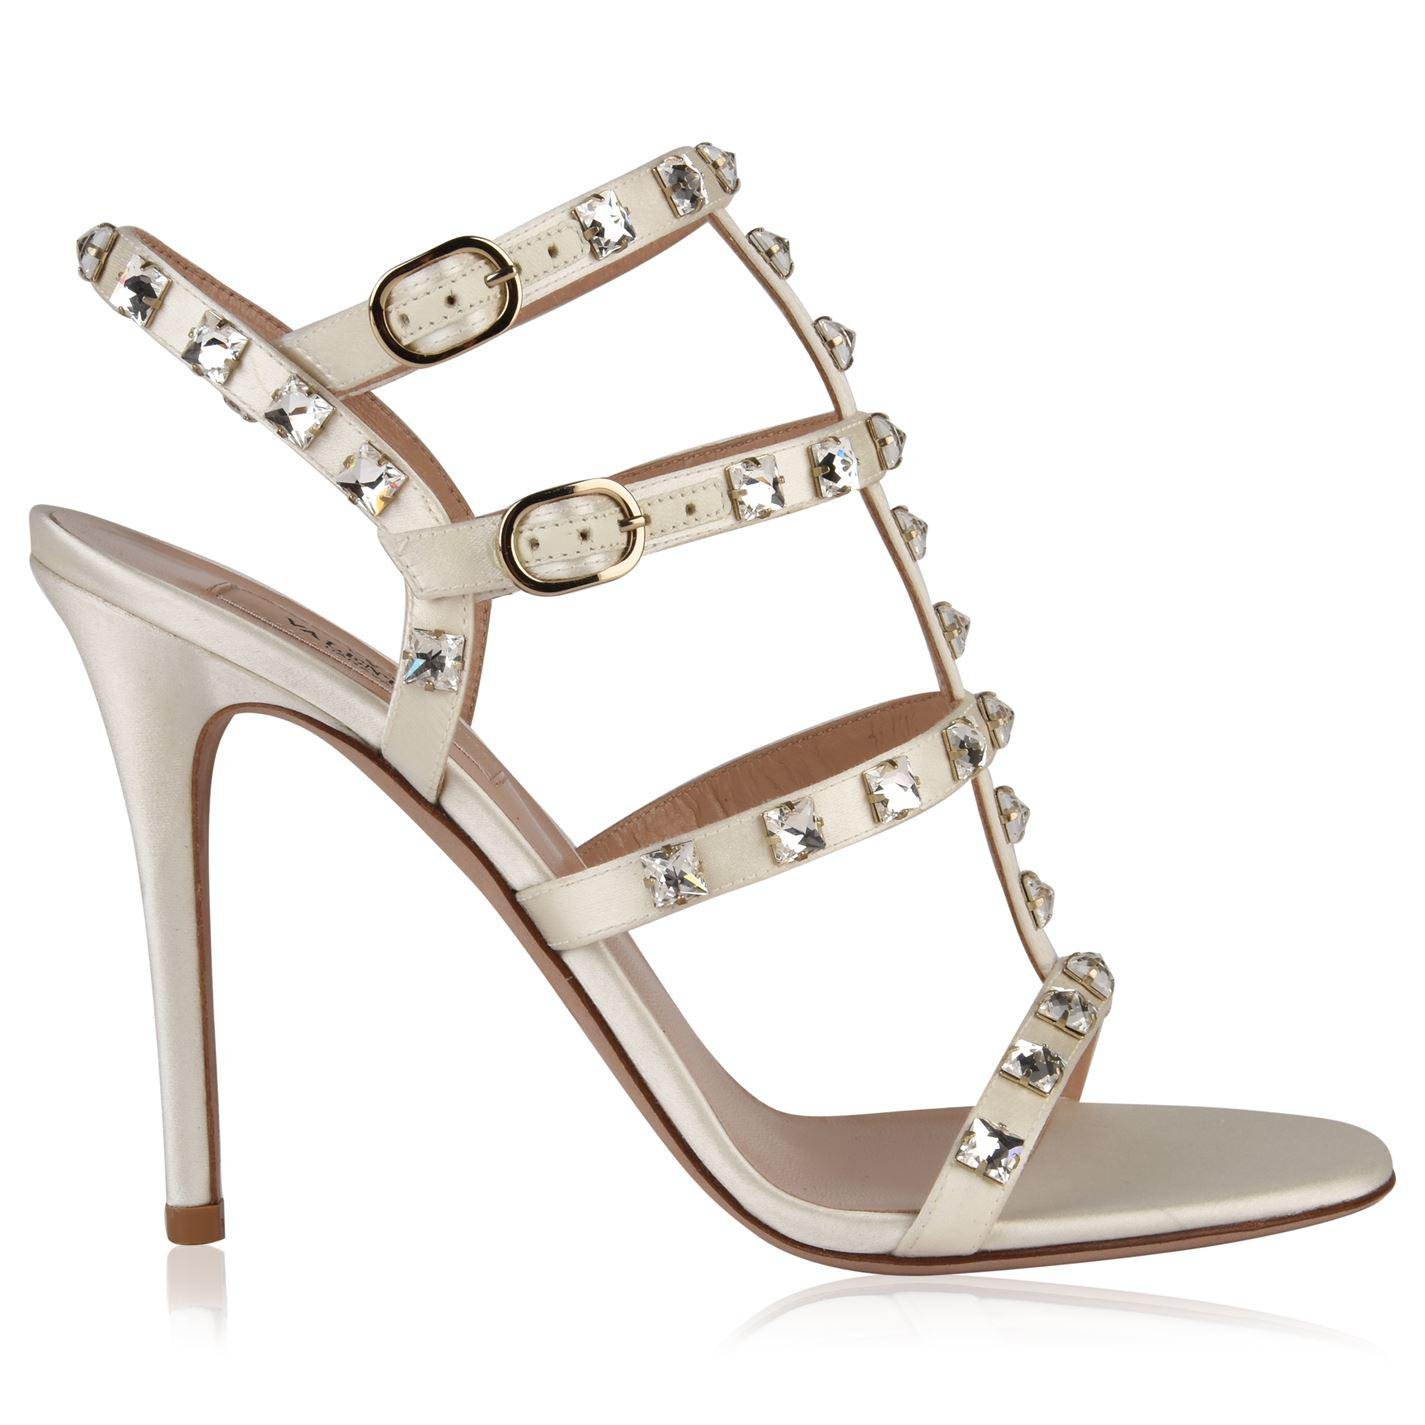 e6537daad81 Lyst - Valentino Rockstud Crystal Heeled Sandals in White